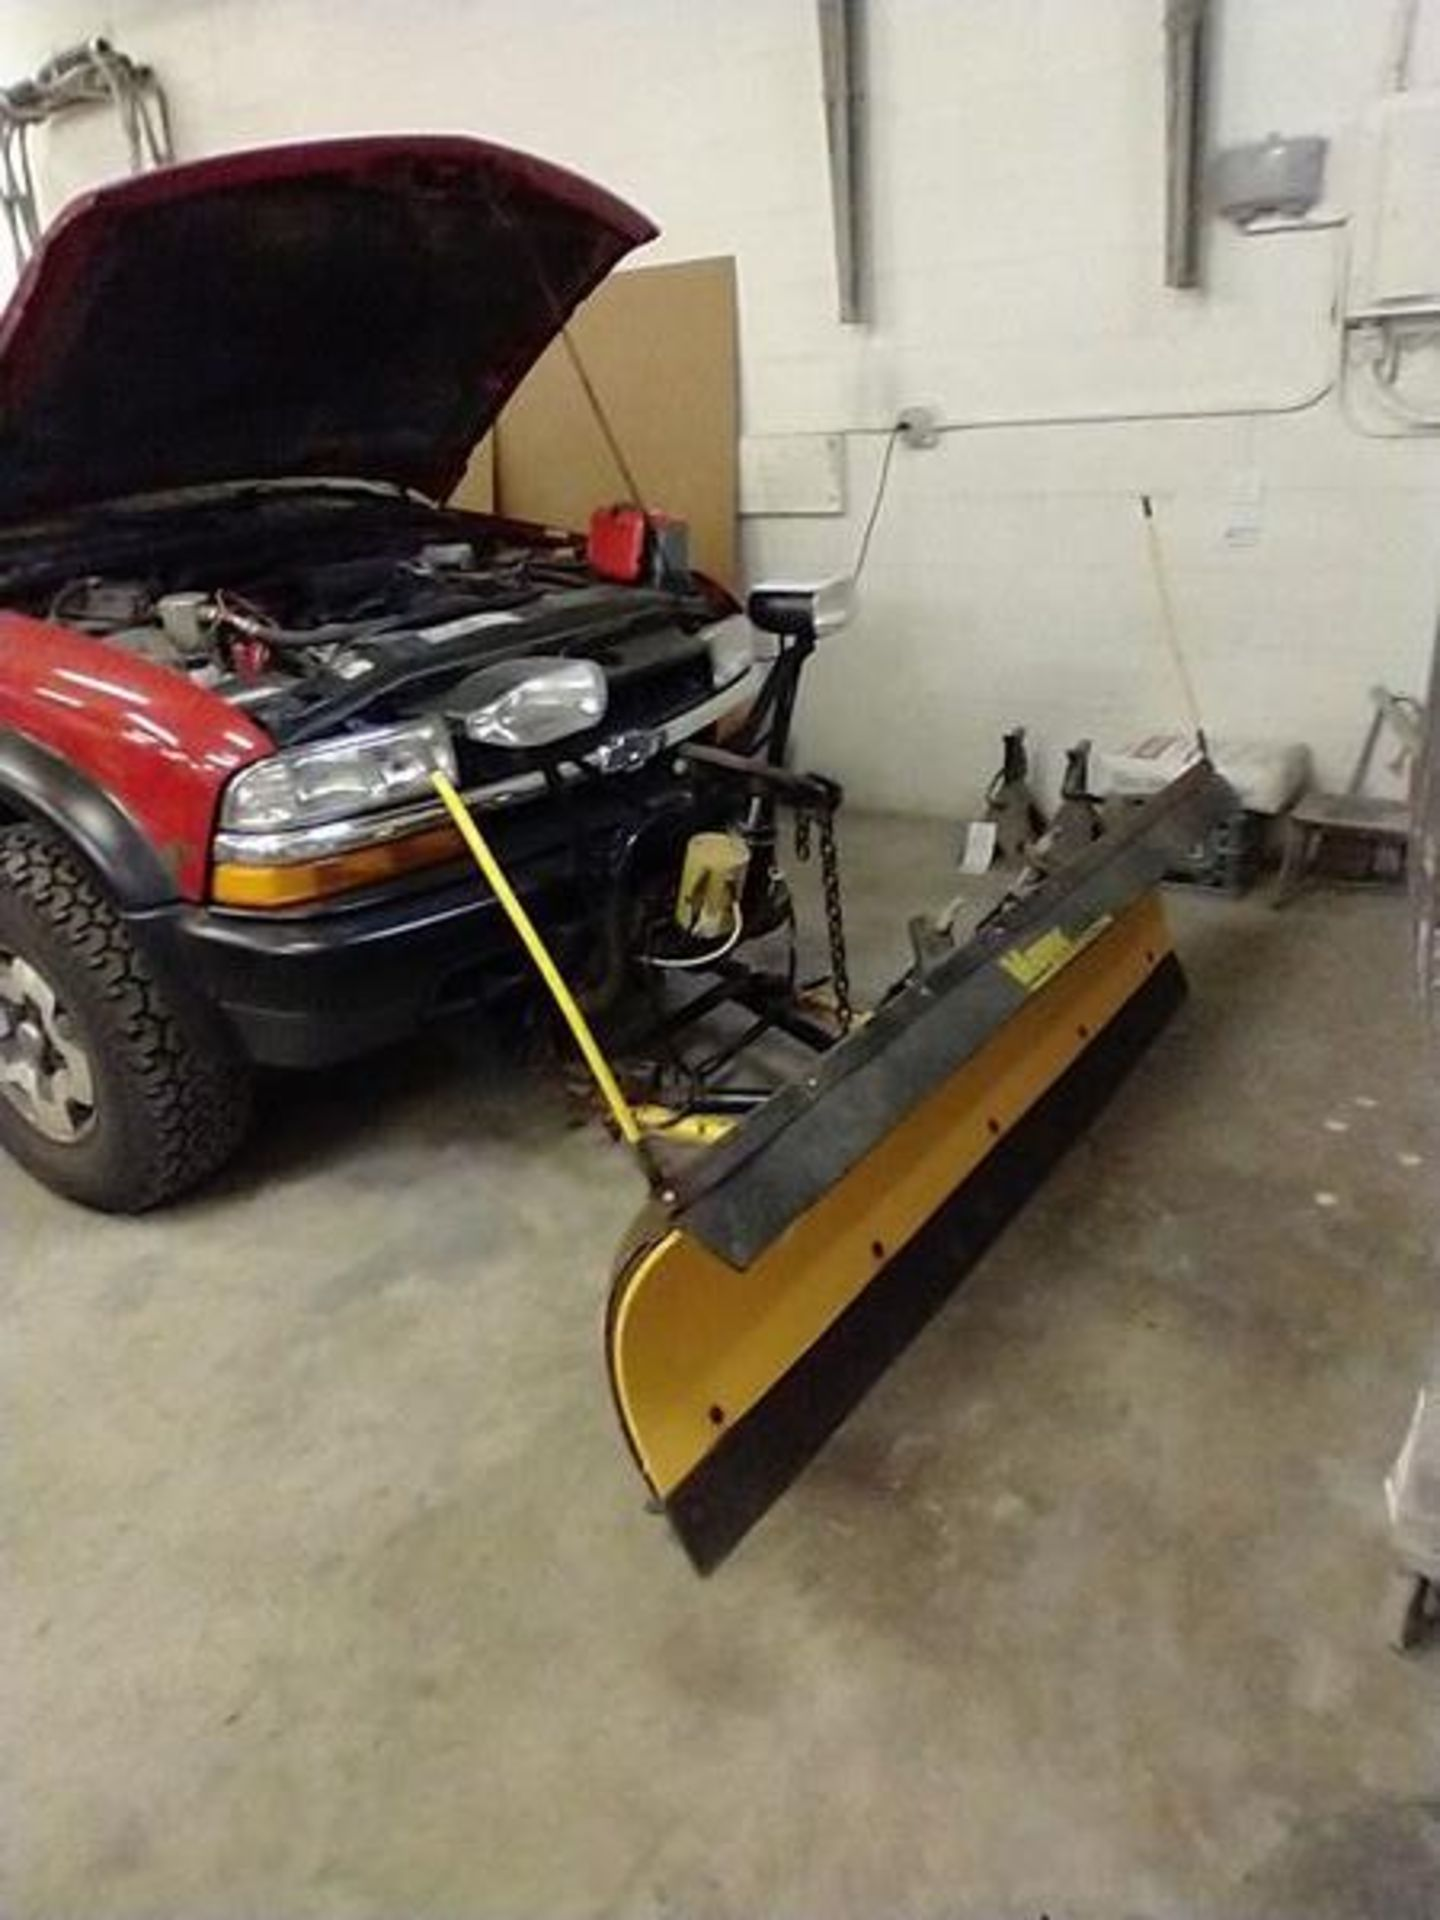 """2003 MANUAL CHEVY S10 TRUCK WITH 78"""" PLOW - NEEDS BREAKS - 109837 MILES - VIN 1GCCT19X938234959 - Image 3 of 9"""